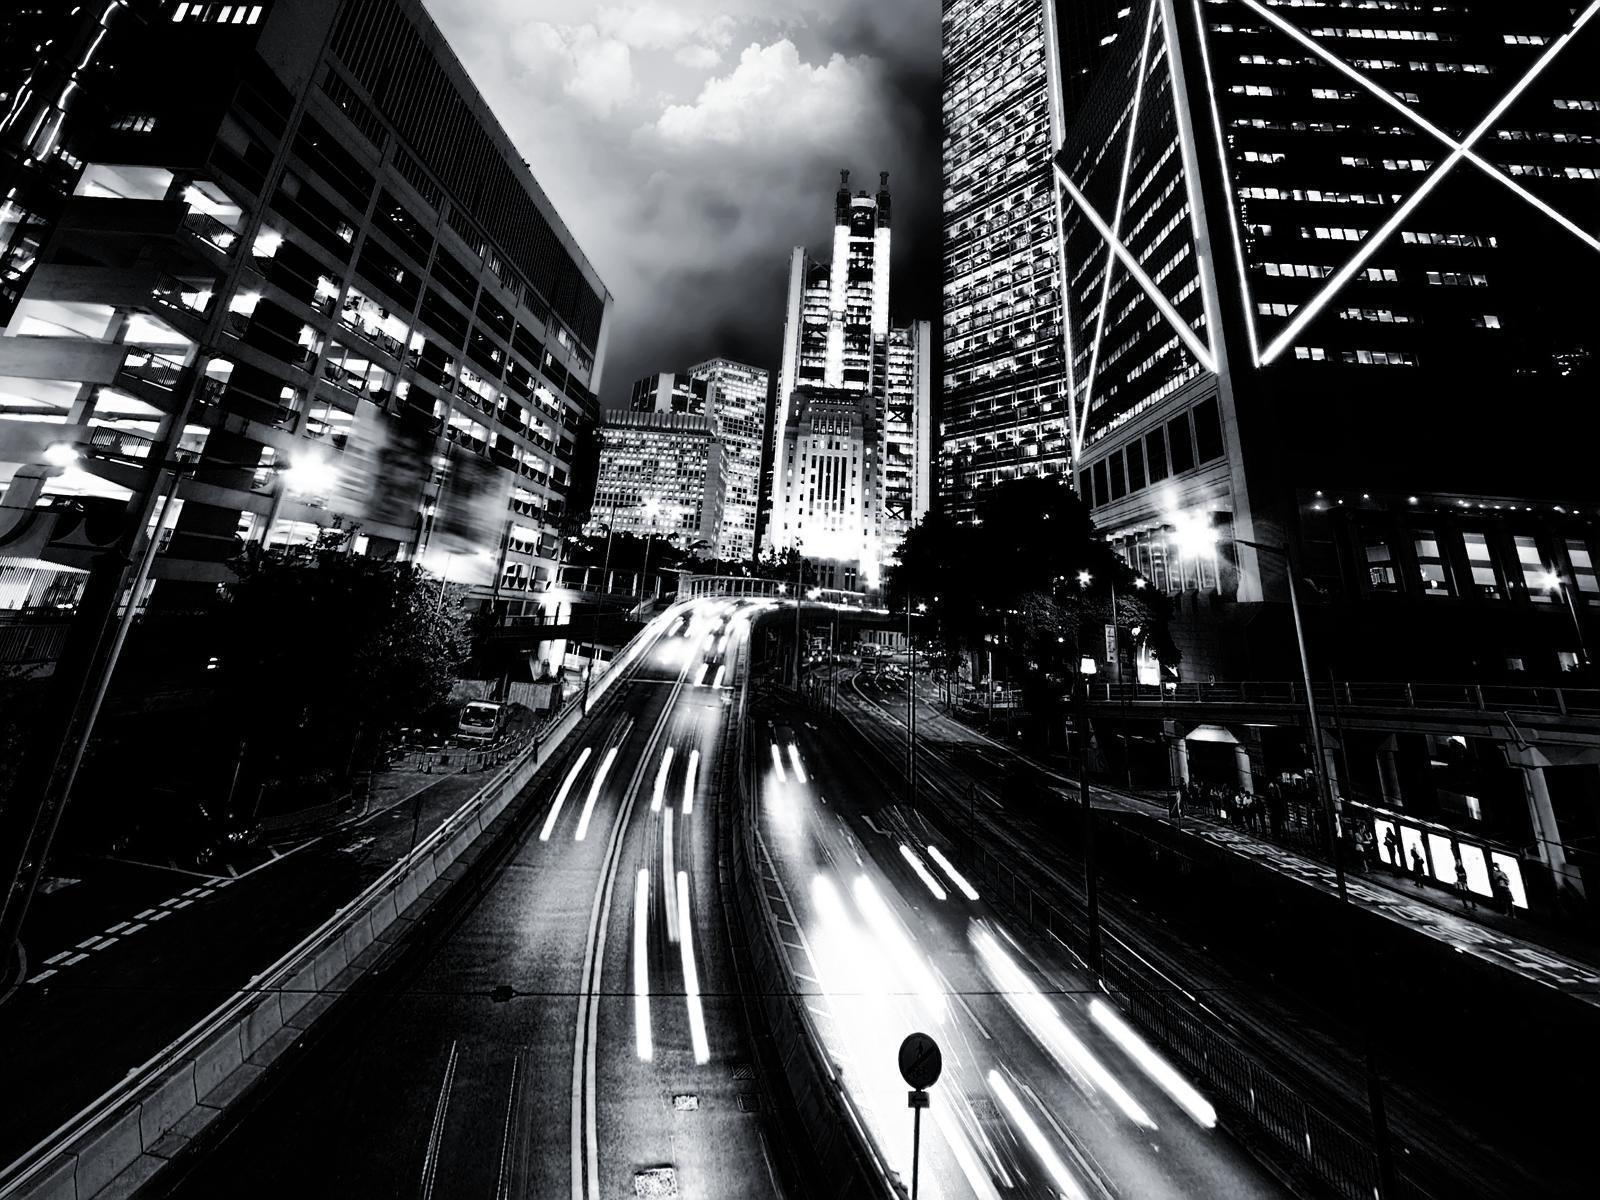 Black And White City Wallpapers Border 13634 Full HD Wallpapers